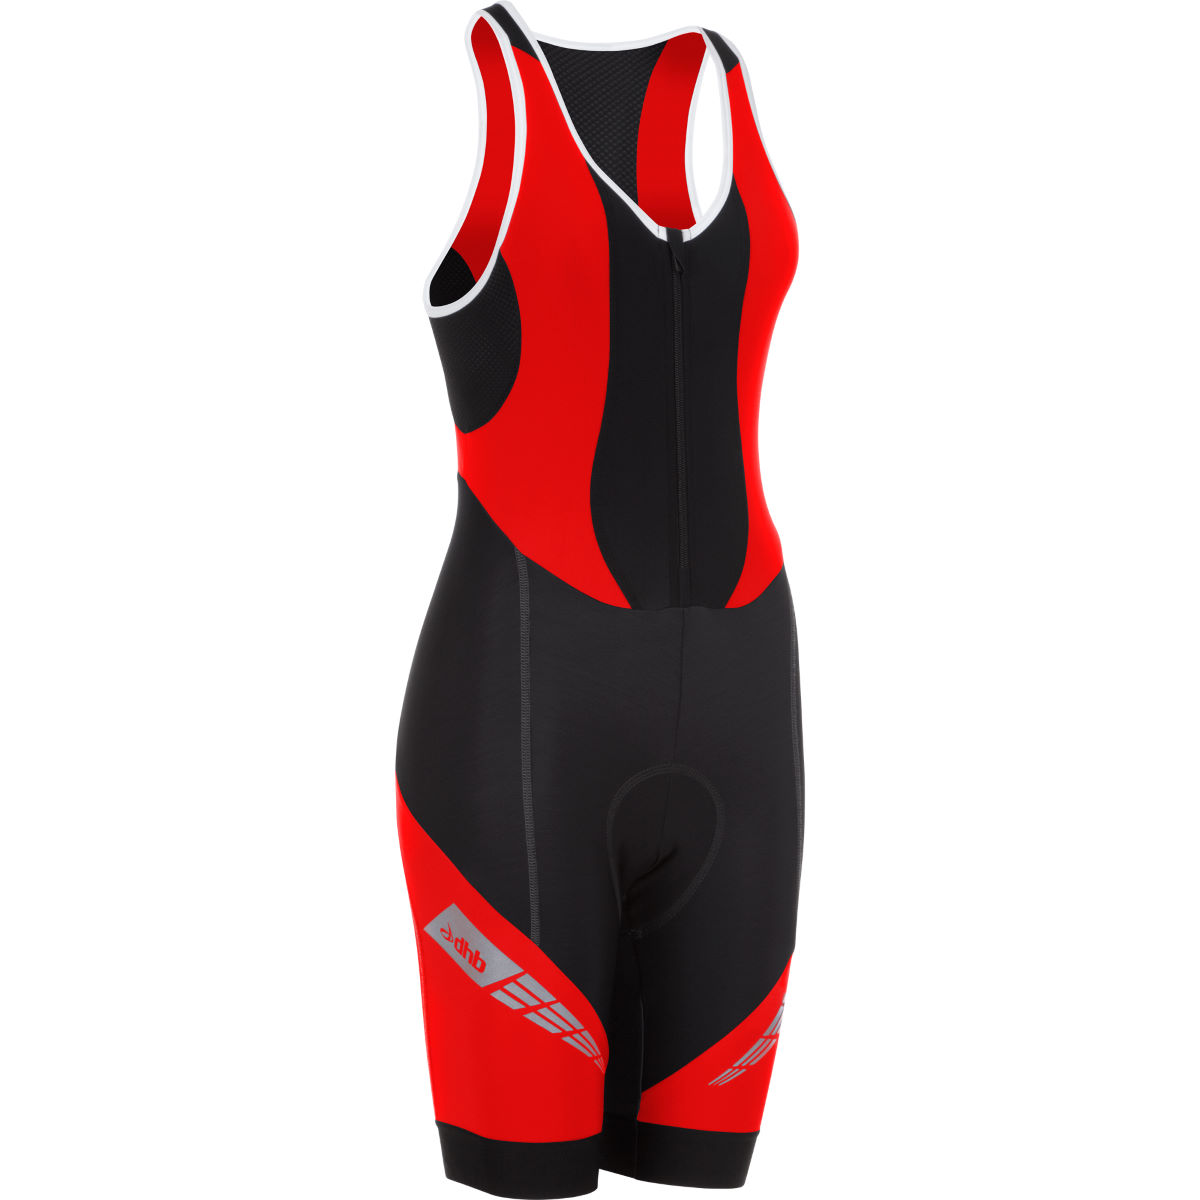 dhb Women's Vaeon Roubaix Pro Padded Bib Short